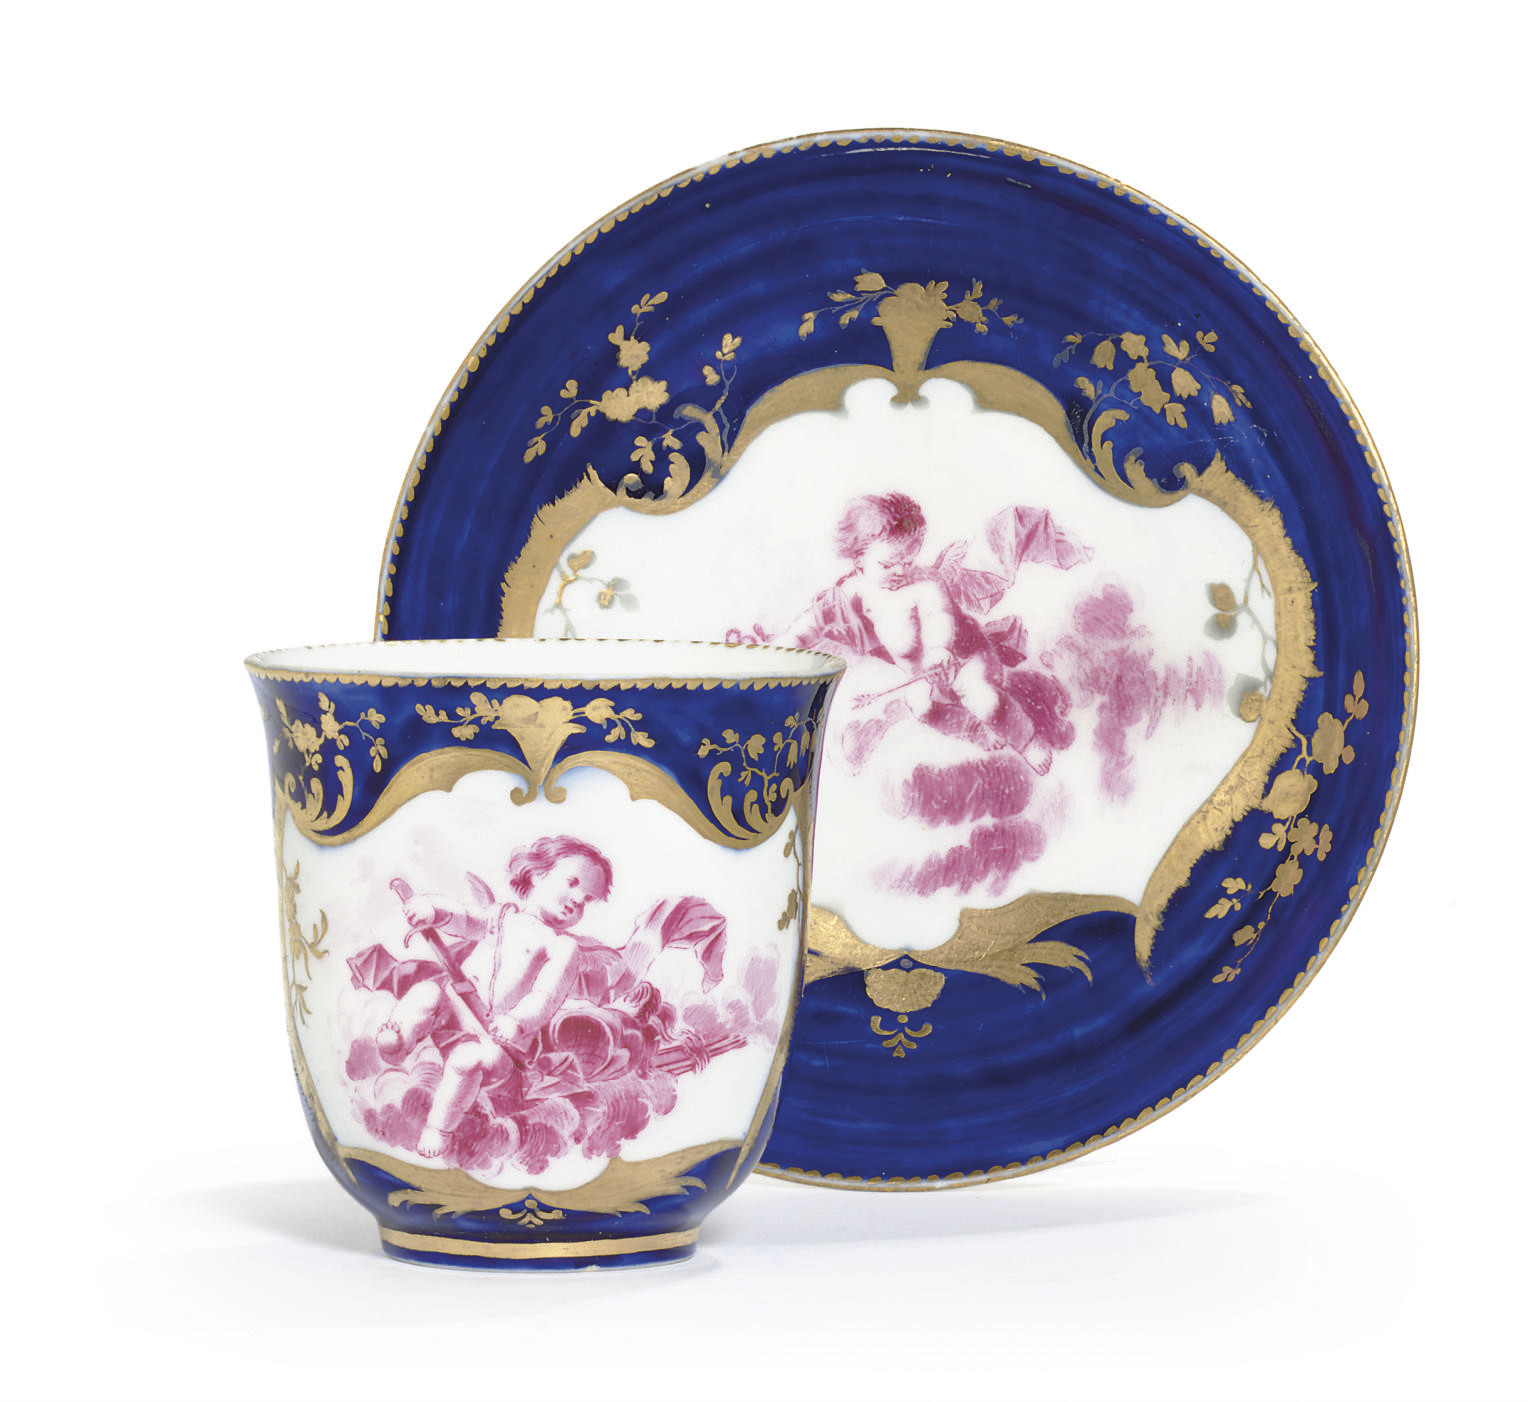 A VINCENNES BLEU LAPIS CUP AND